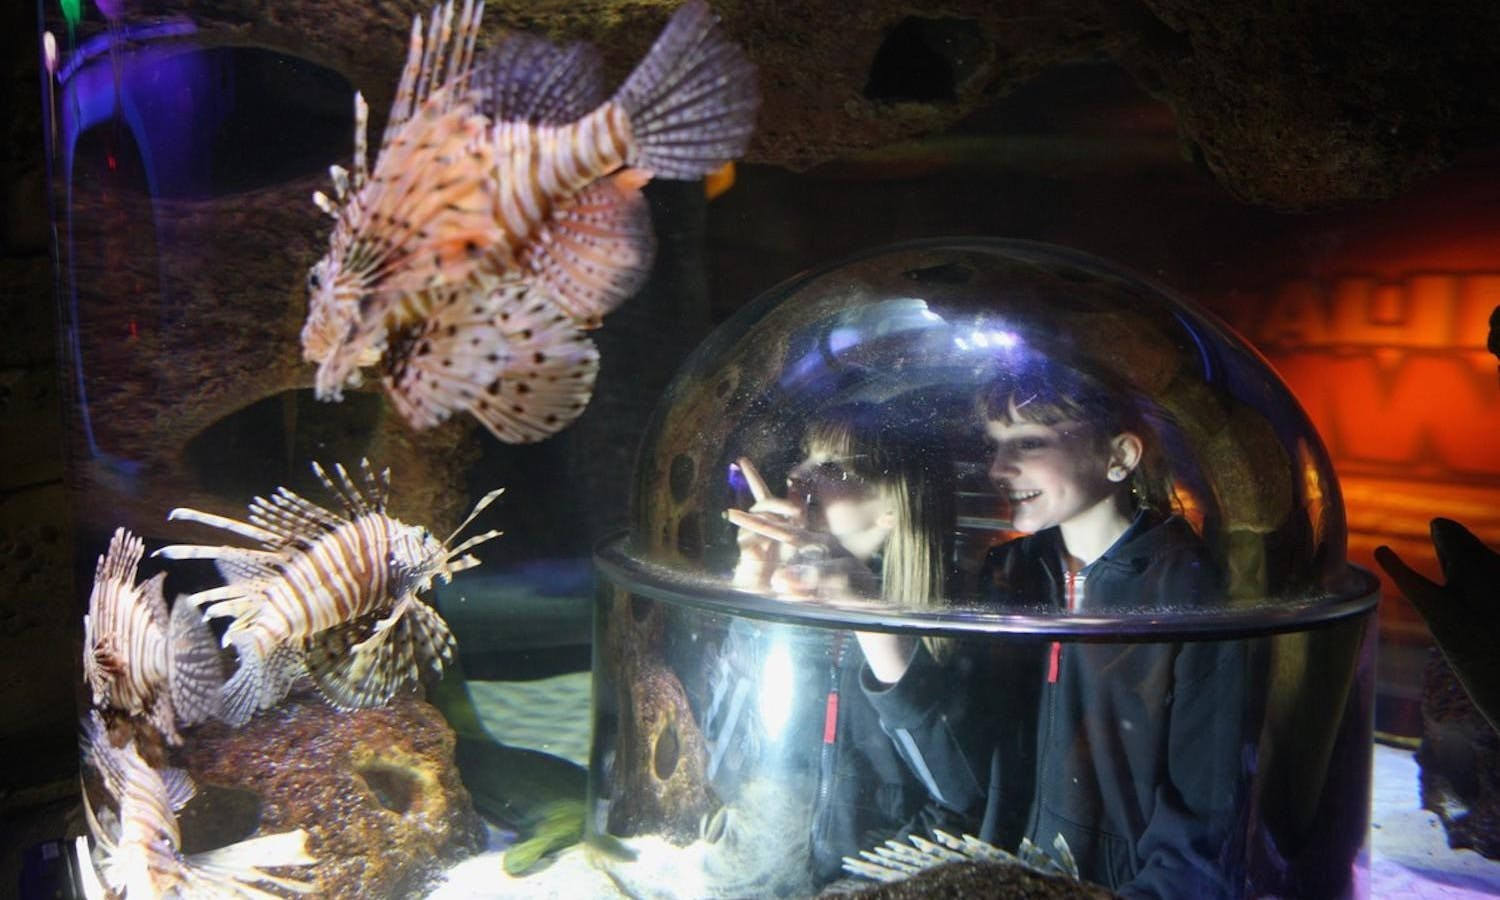 Freshwater aquarium fish orlando - I Drive 360 Attractions Orlando Eye Madame Tussauds Sea Life Aquarium